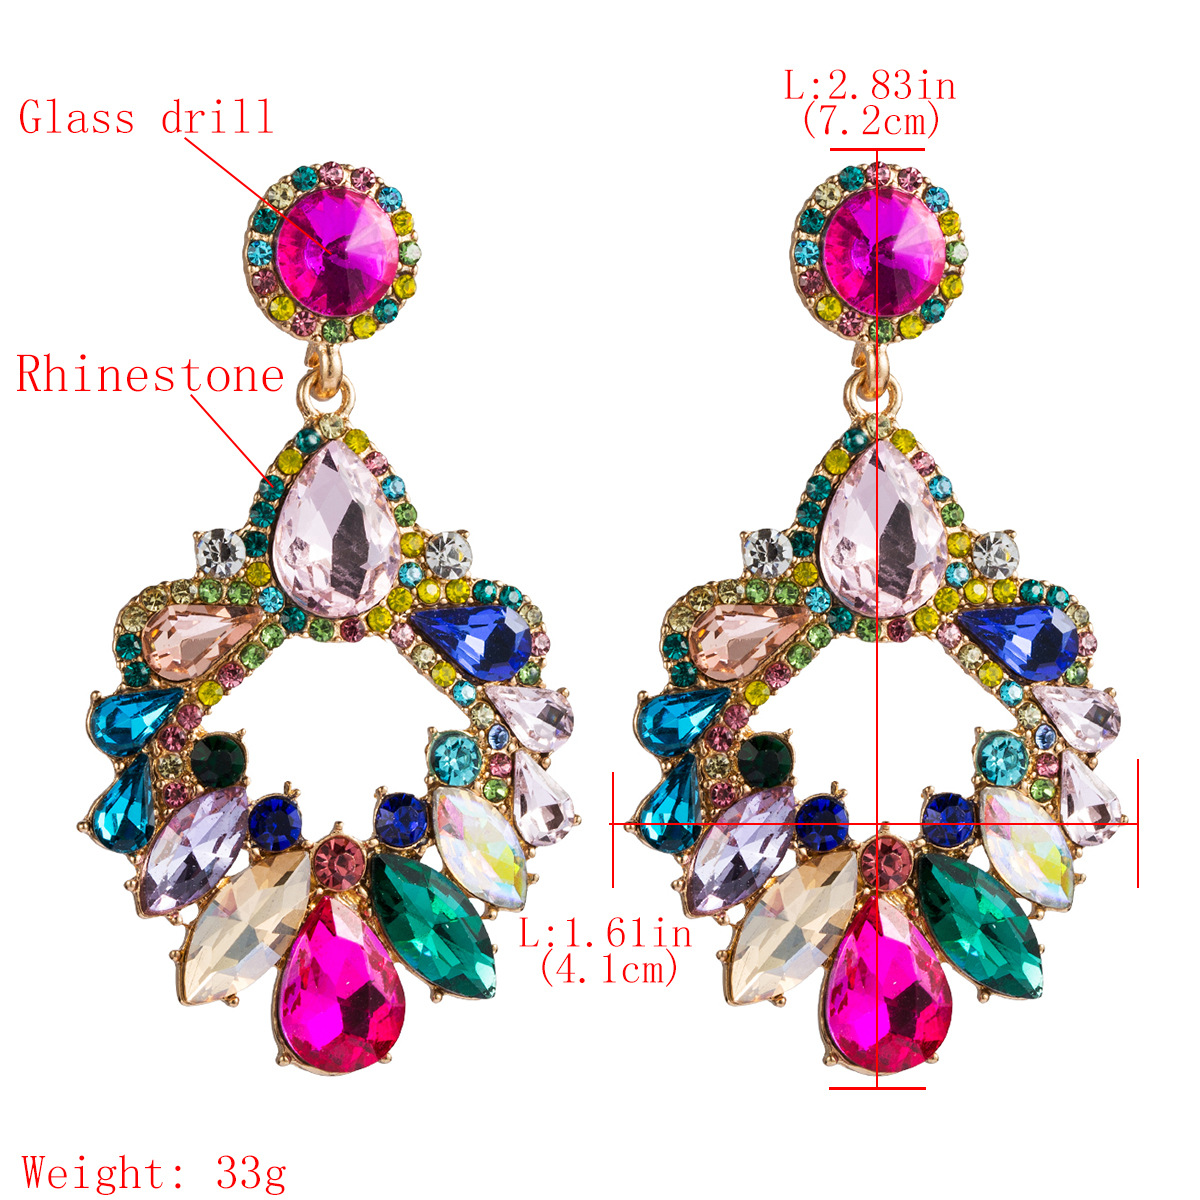 Fashion multi-layer drop-shaped rhinestone glass drill diamond geometric diamond earrings female super flash earrings NHJE174396